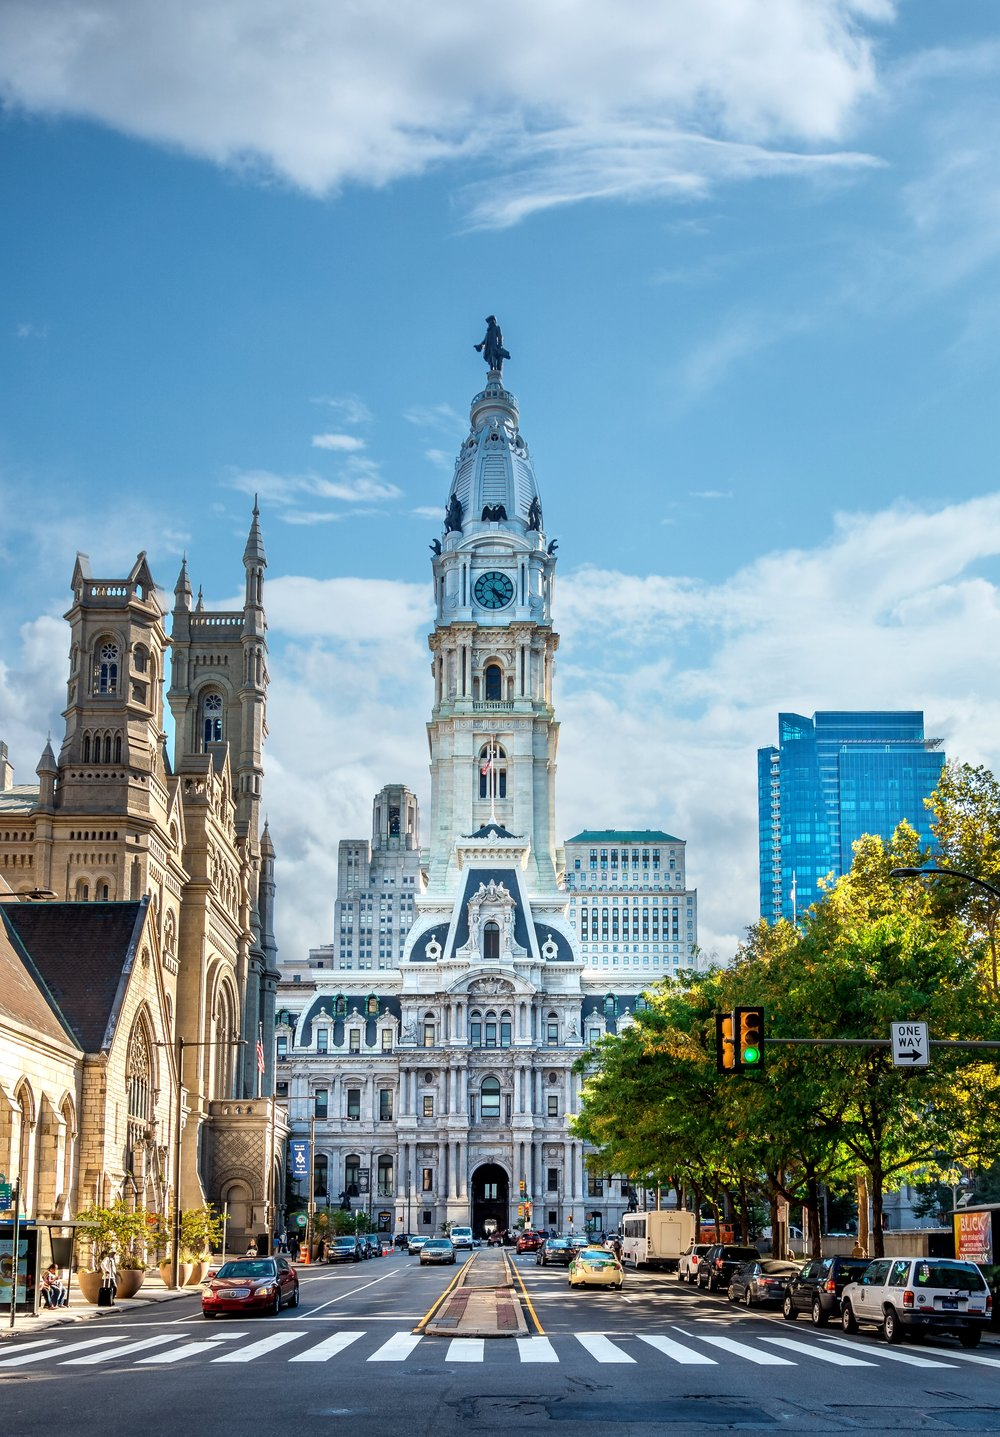 Understand our history - Philadelphia wears Wayne Edwards for almost 50 years